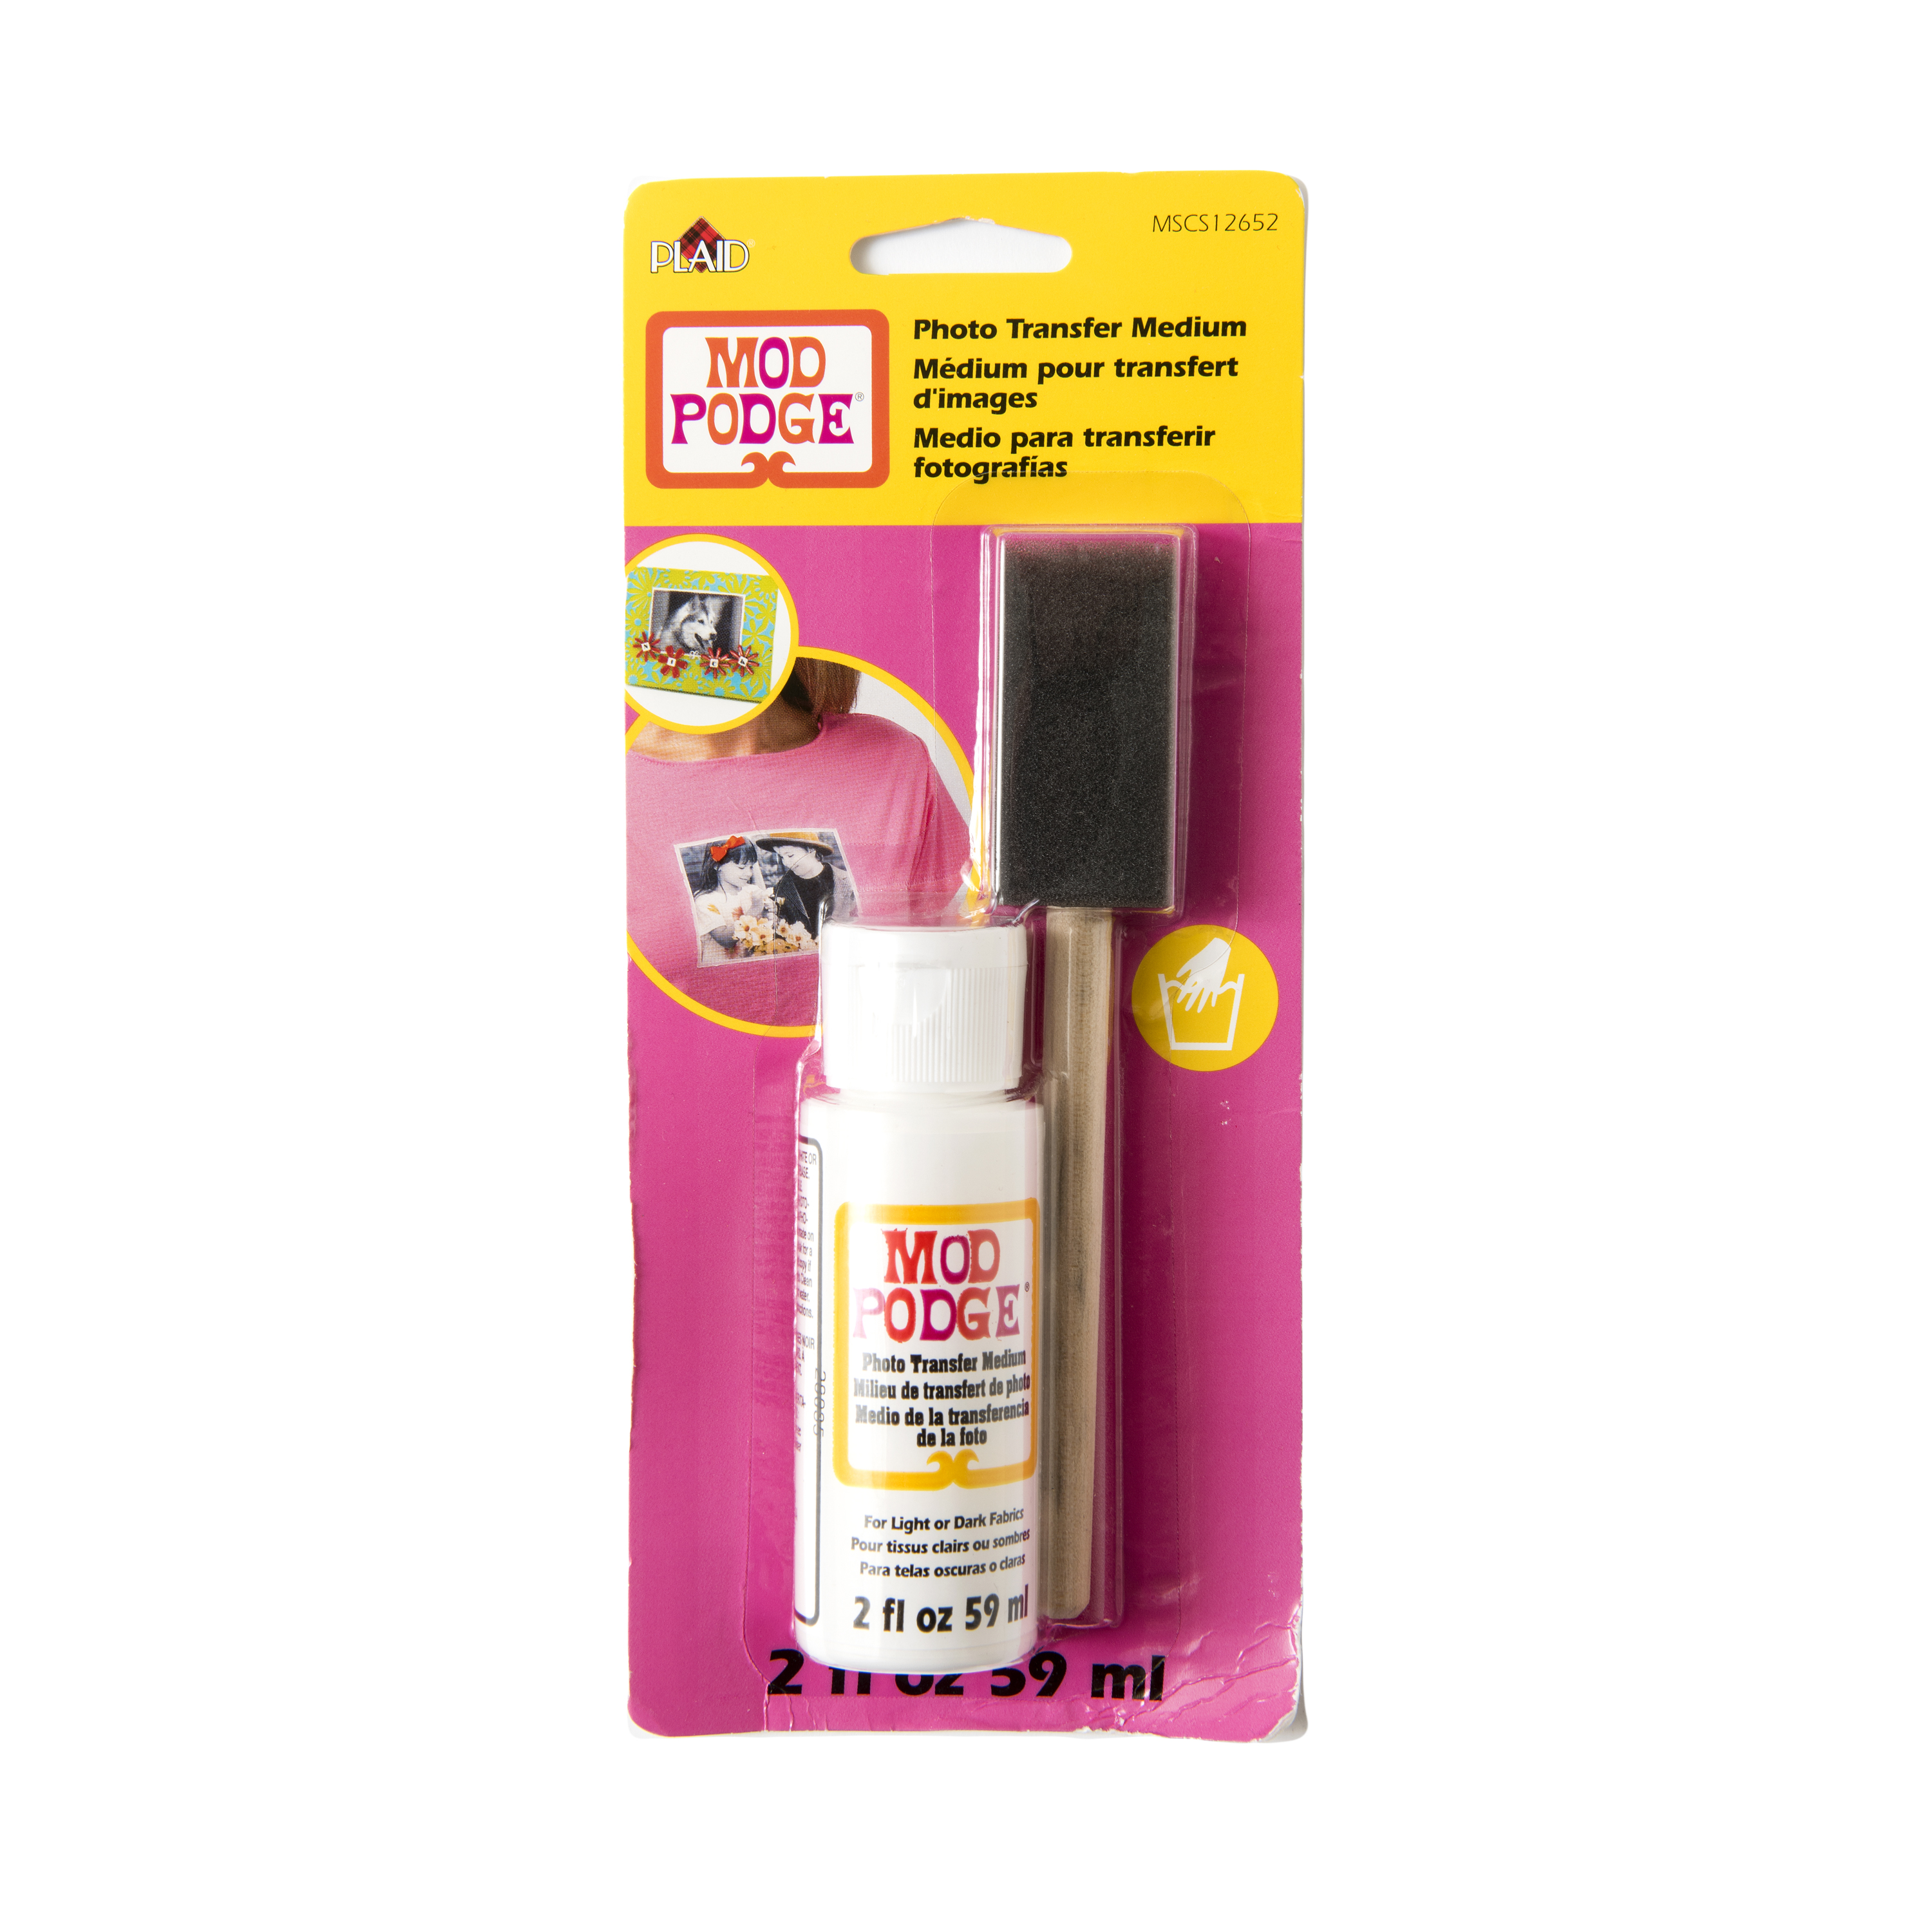 Mod   Podge Photo Transfer Medium for Light or Dark Fabrics by Plaid, 2 oz.